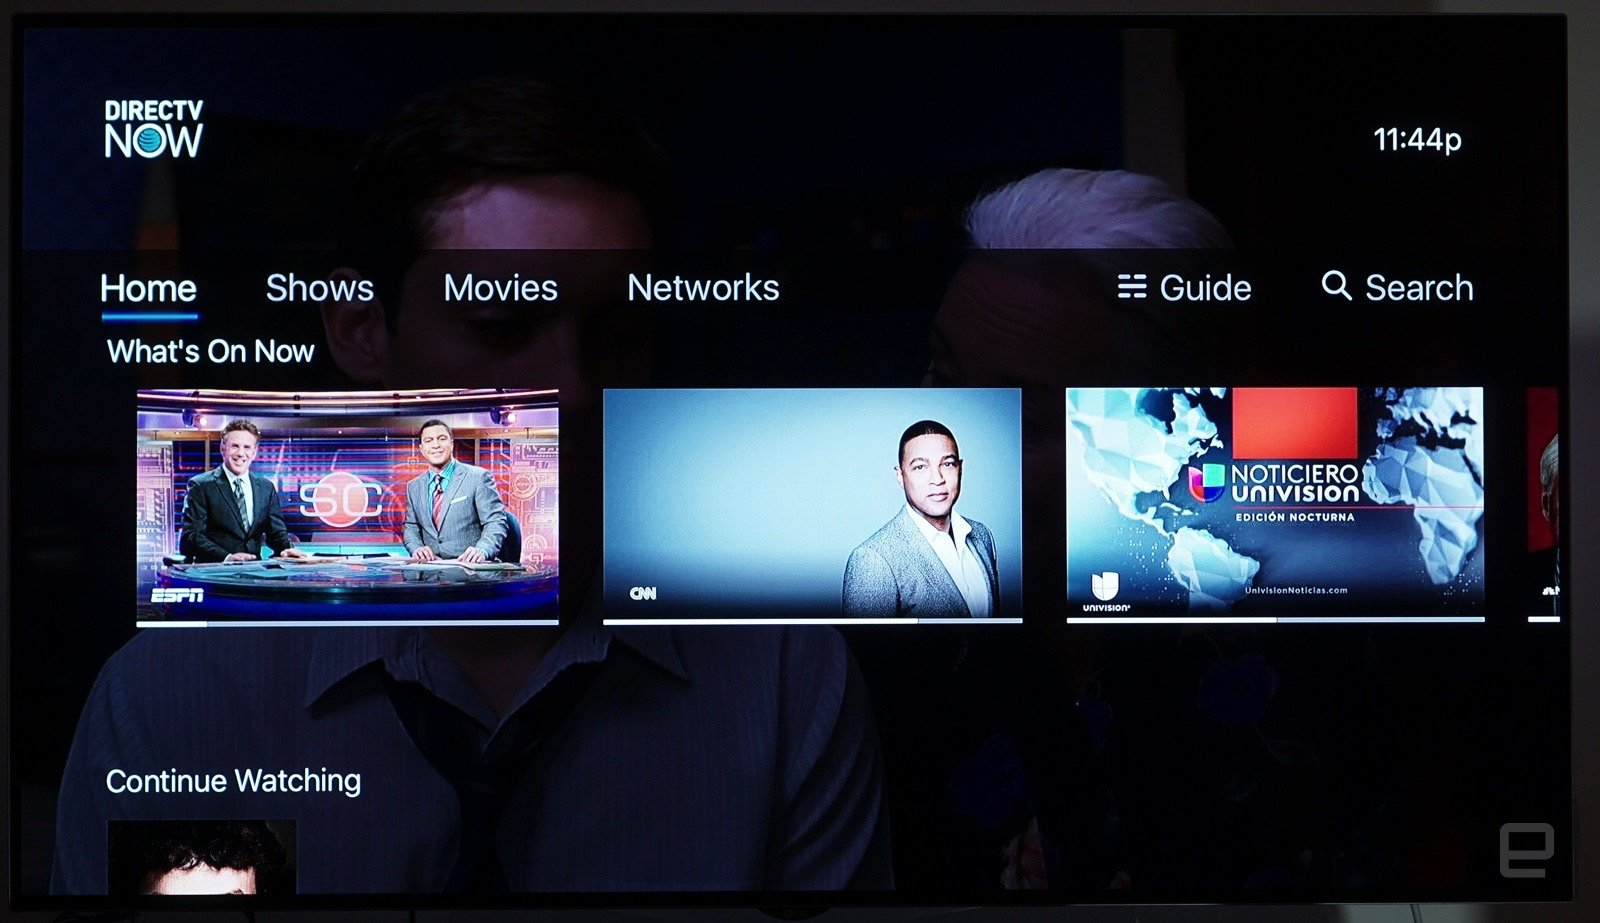 DirecTV Now as it currently appears on Apple TV